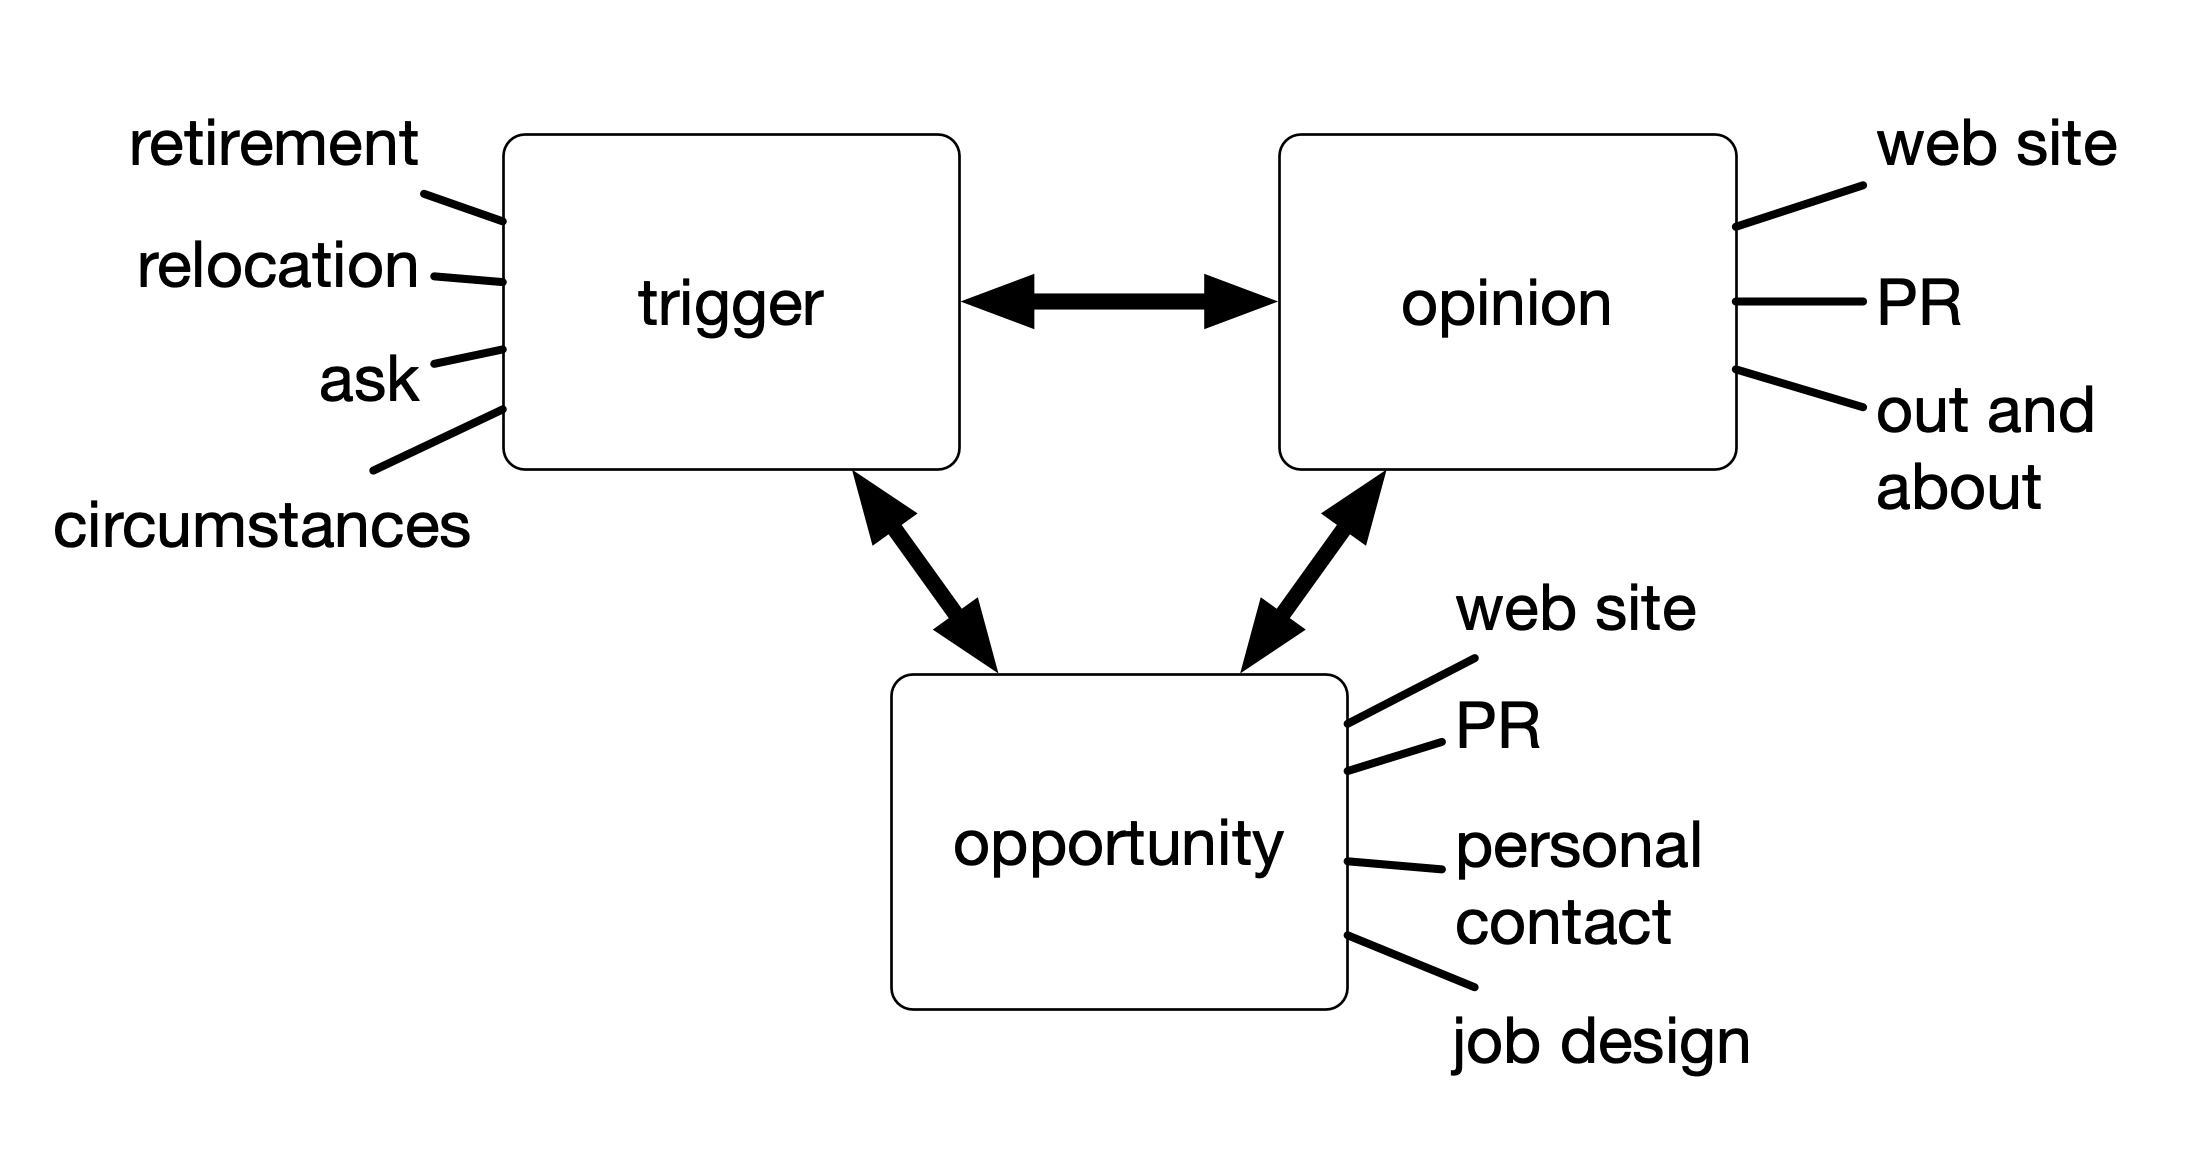 A three-step model for volunteer recruitment